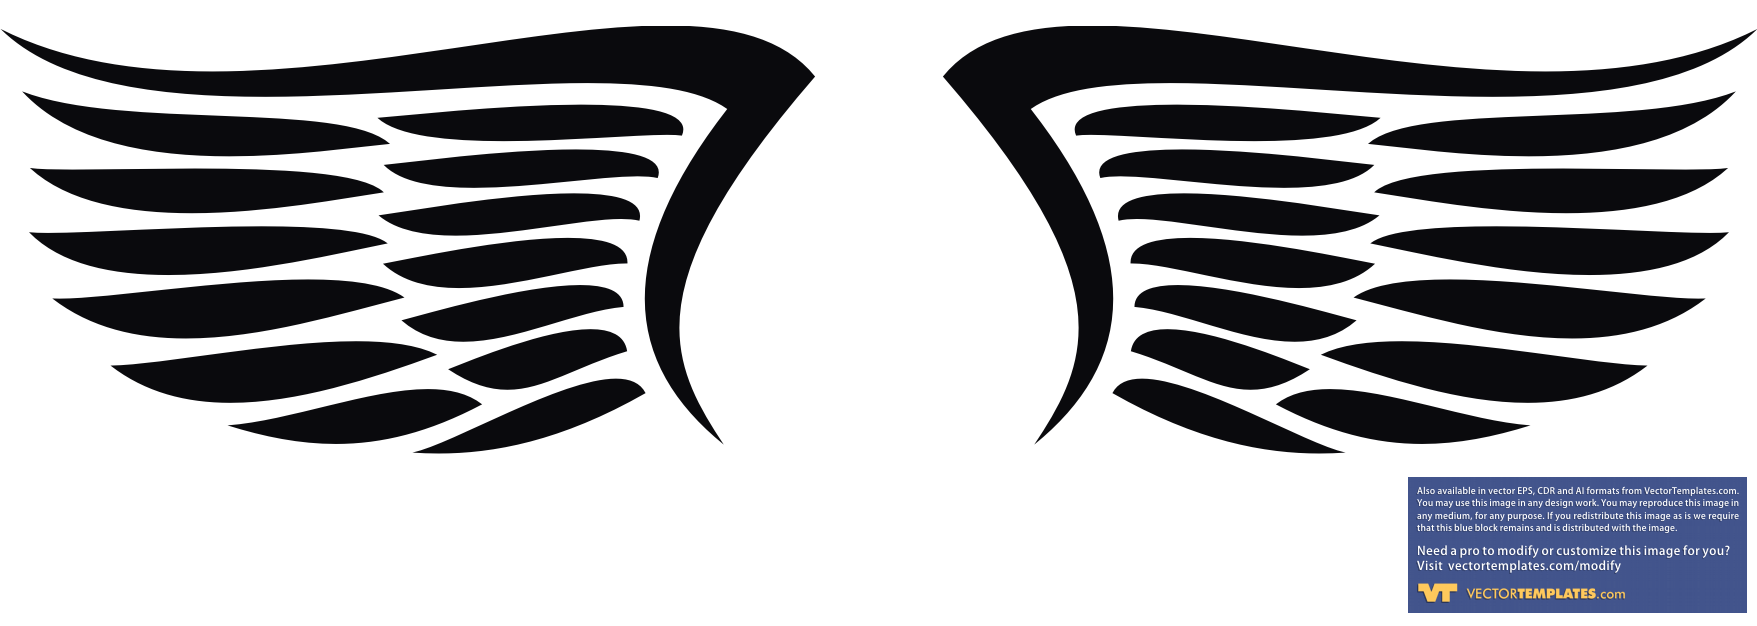 Eagles superman logo clipart vector black and white download Wings Images vector black and white download